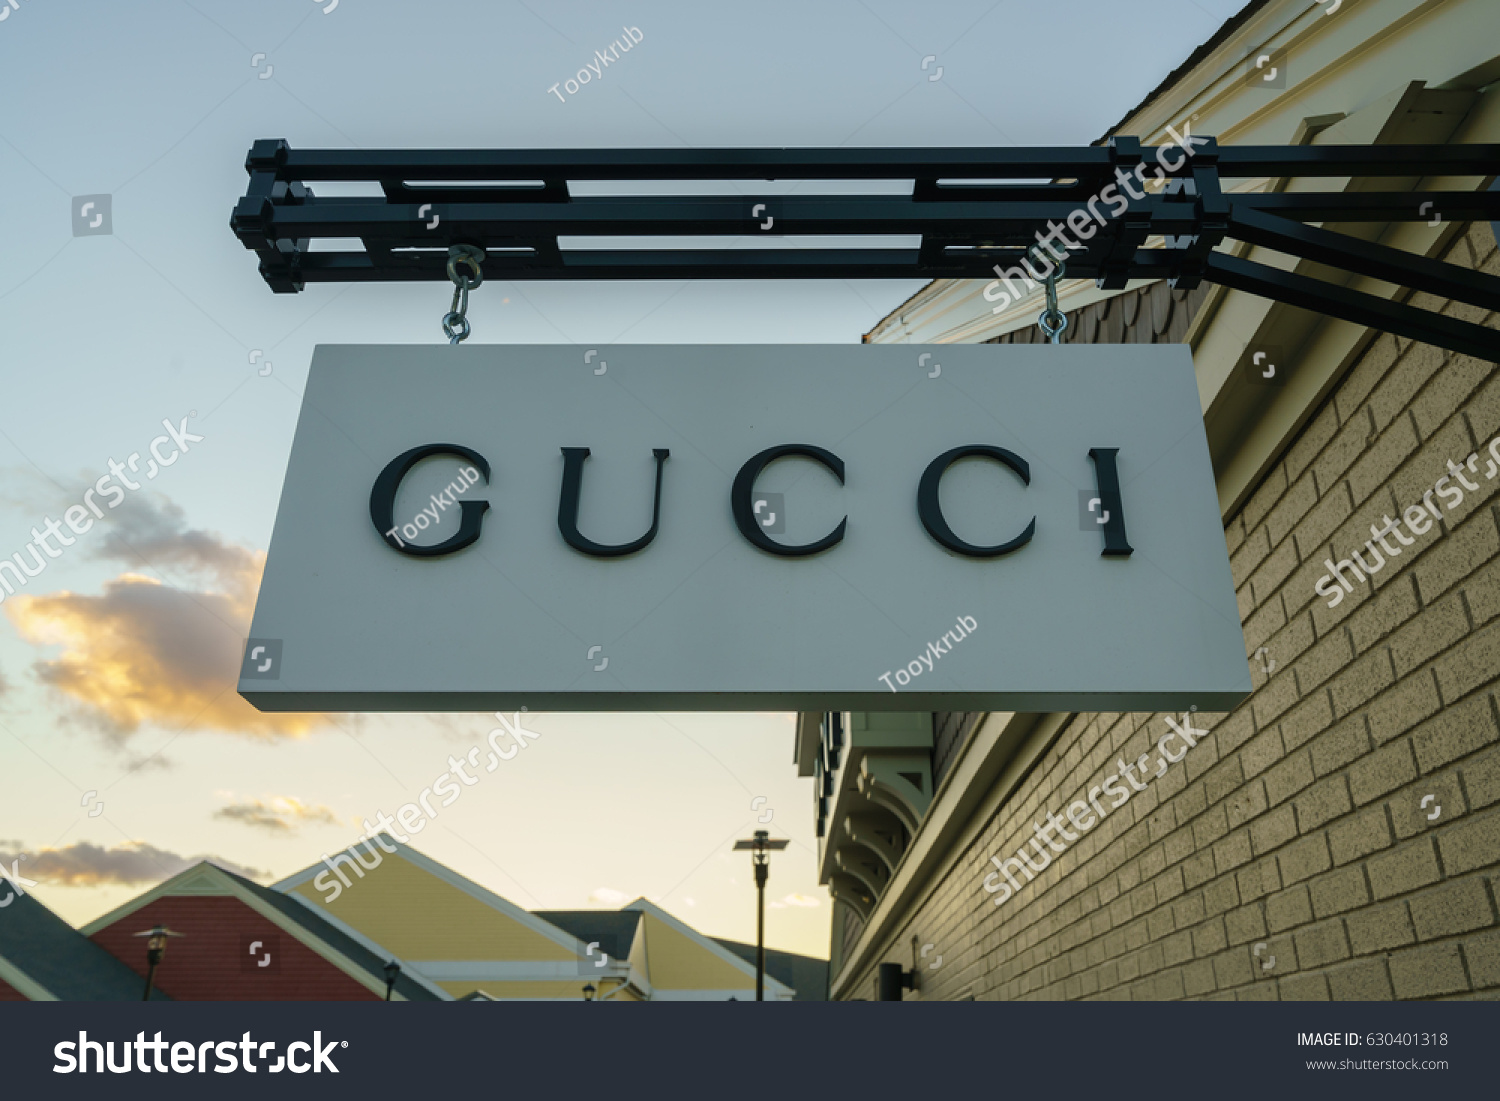 e8347bcc2a4 WOODBURY NEW YORK OCT 26 Gucci Stock Photo (Edit Now) 630401318 ...